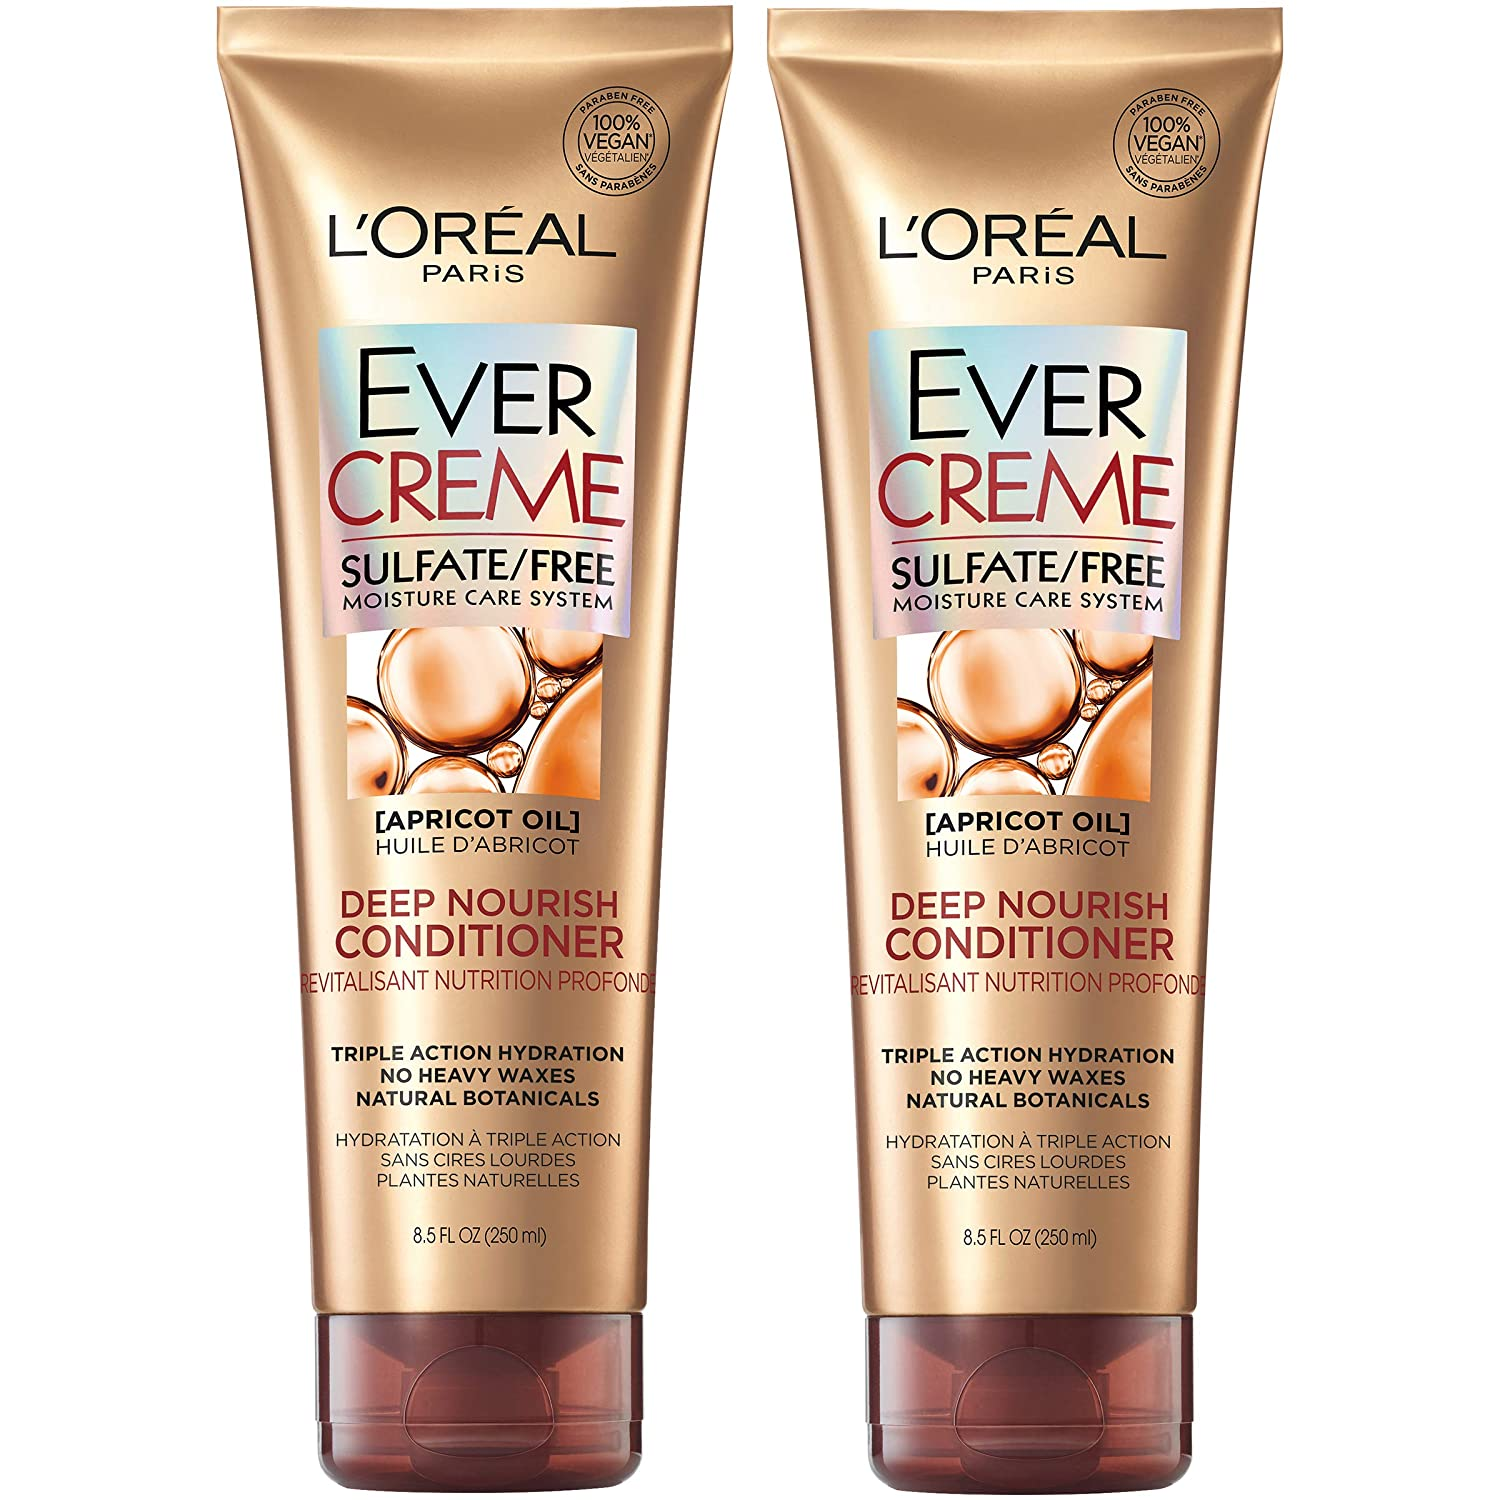 L'Oréal Paris Hair Care EverCreme Sulfate Free Moisturizing Deep Nourish Conditioner with Apricot Oil for Dry Hair, 8.5 Fl. Oz (Pack of 2)